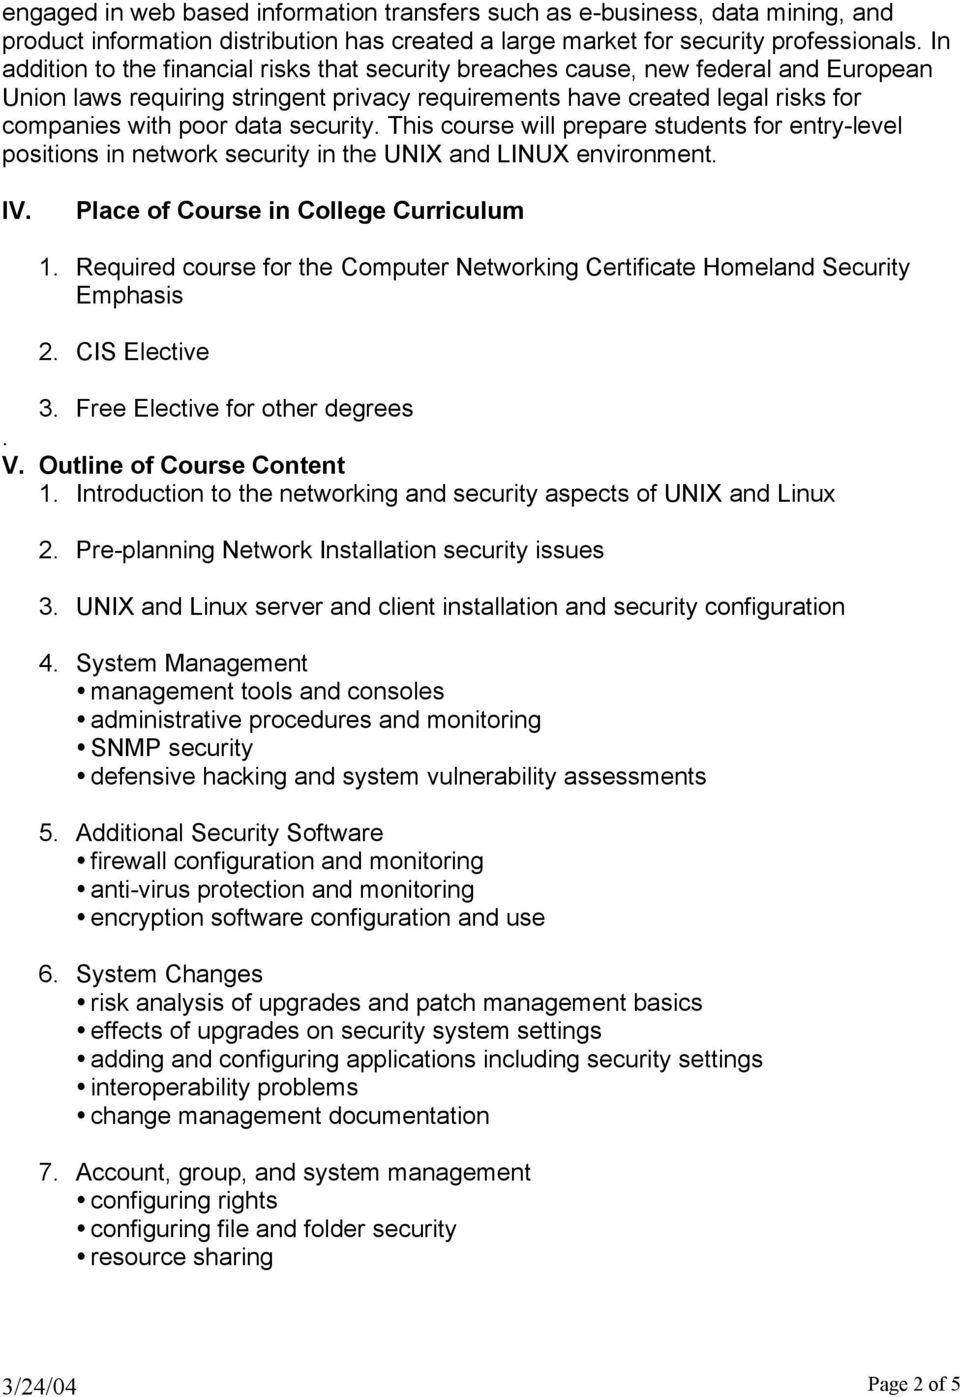 security. This course will prepare students for entry-level positions in network security in the UNIX and LINUX environment. IV. Place of Course in College Curriculum 1.